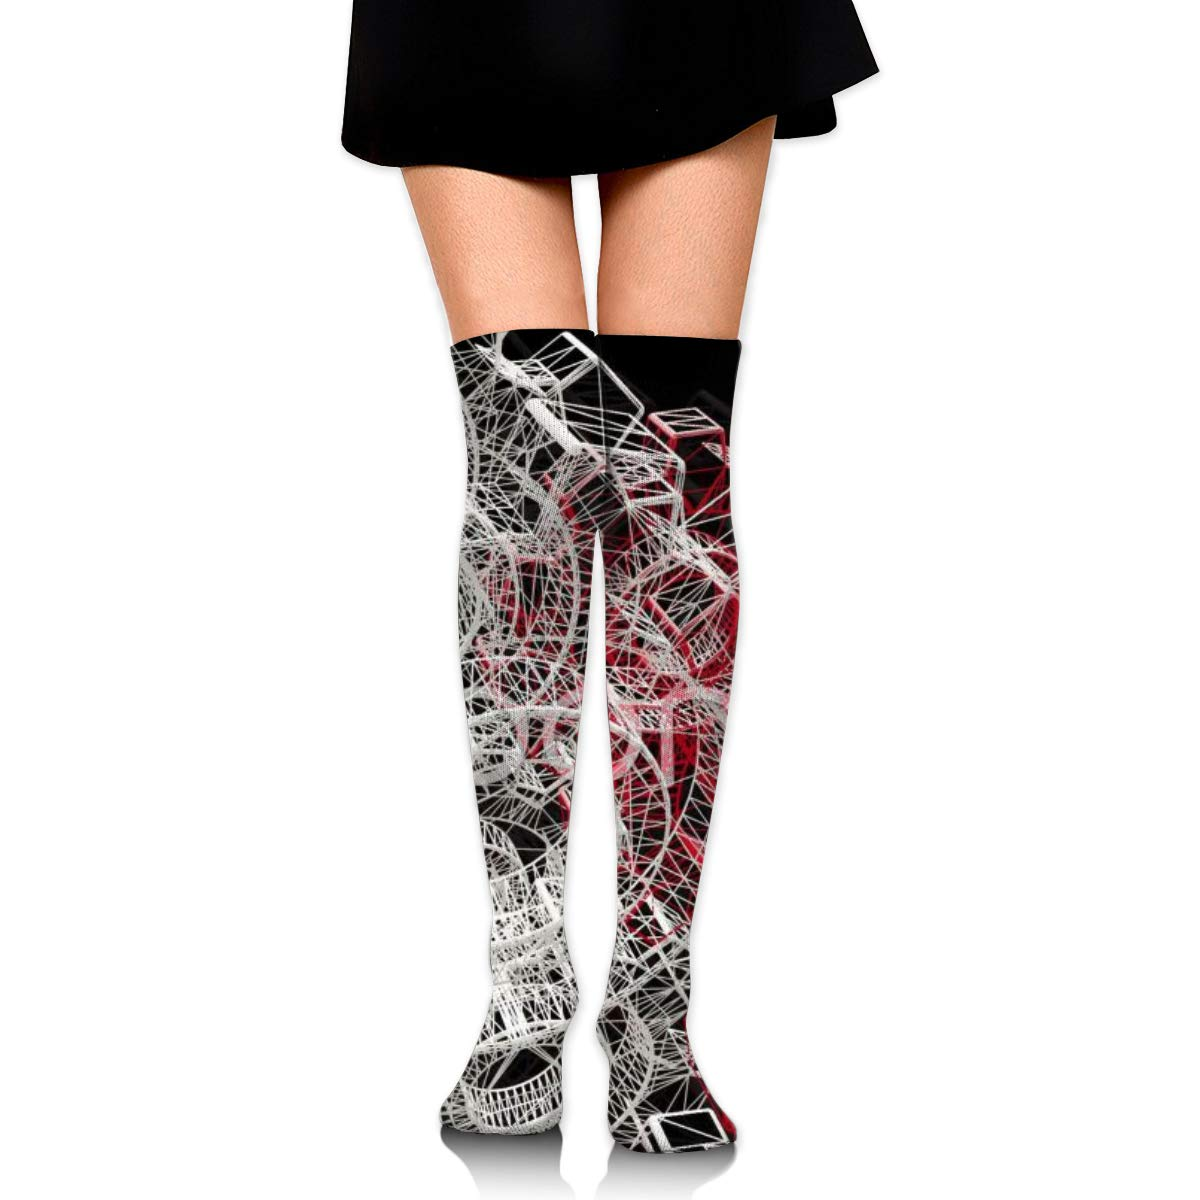 Women Crew Socks Thigh High Knee Gears Black Red Long Tube Dress Legging Casual Compression Stocking